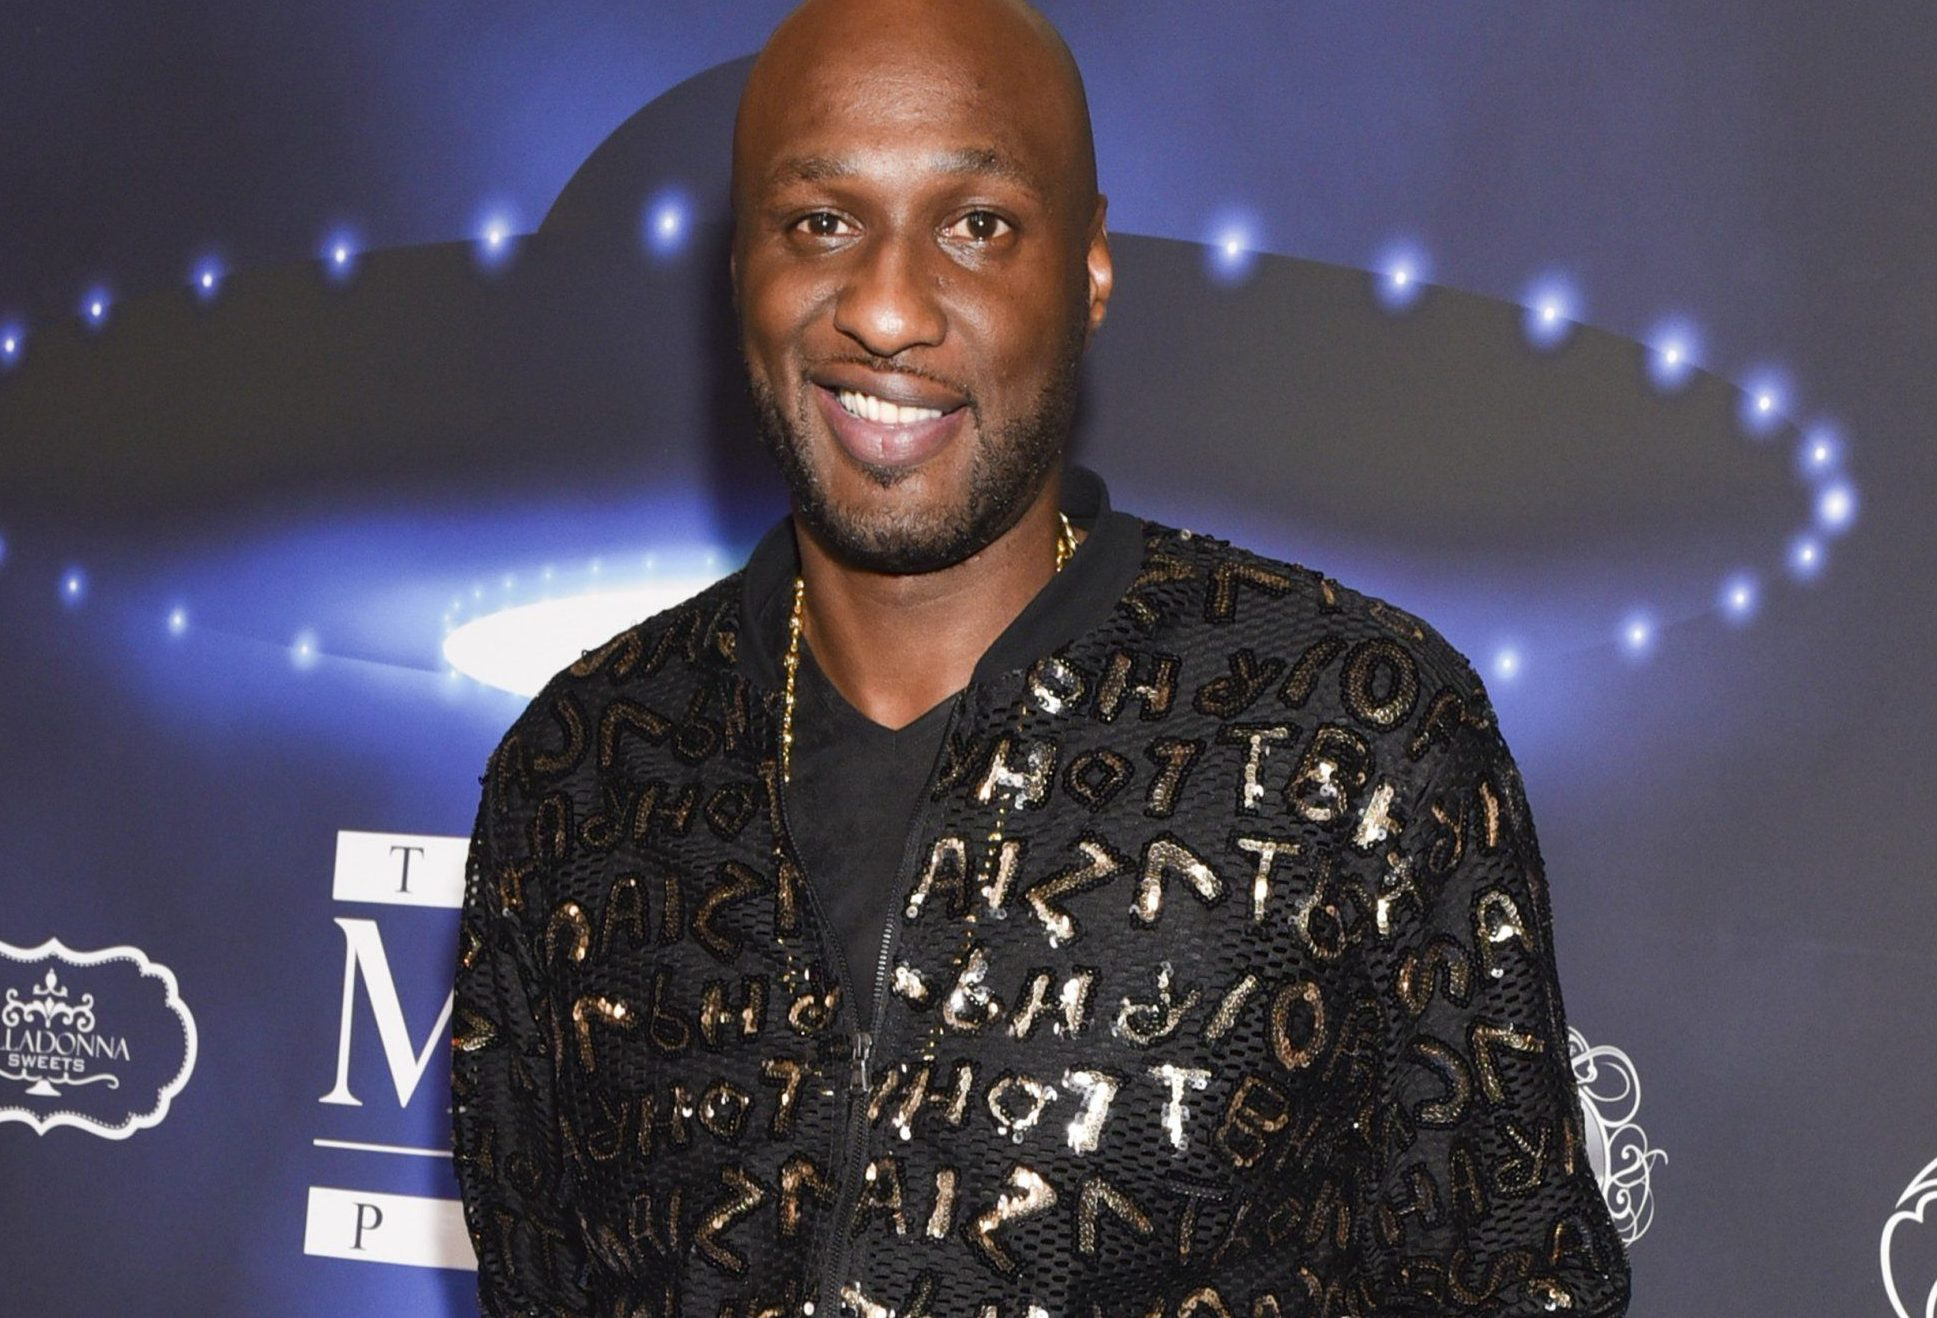 Lamar Odom getting into the weed business after rehab stint for substance abuse